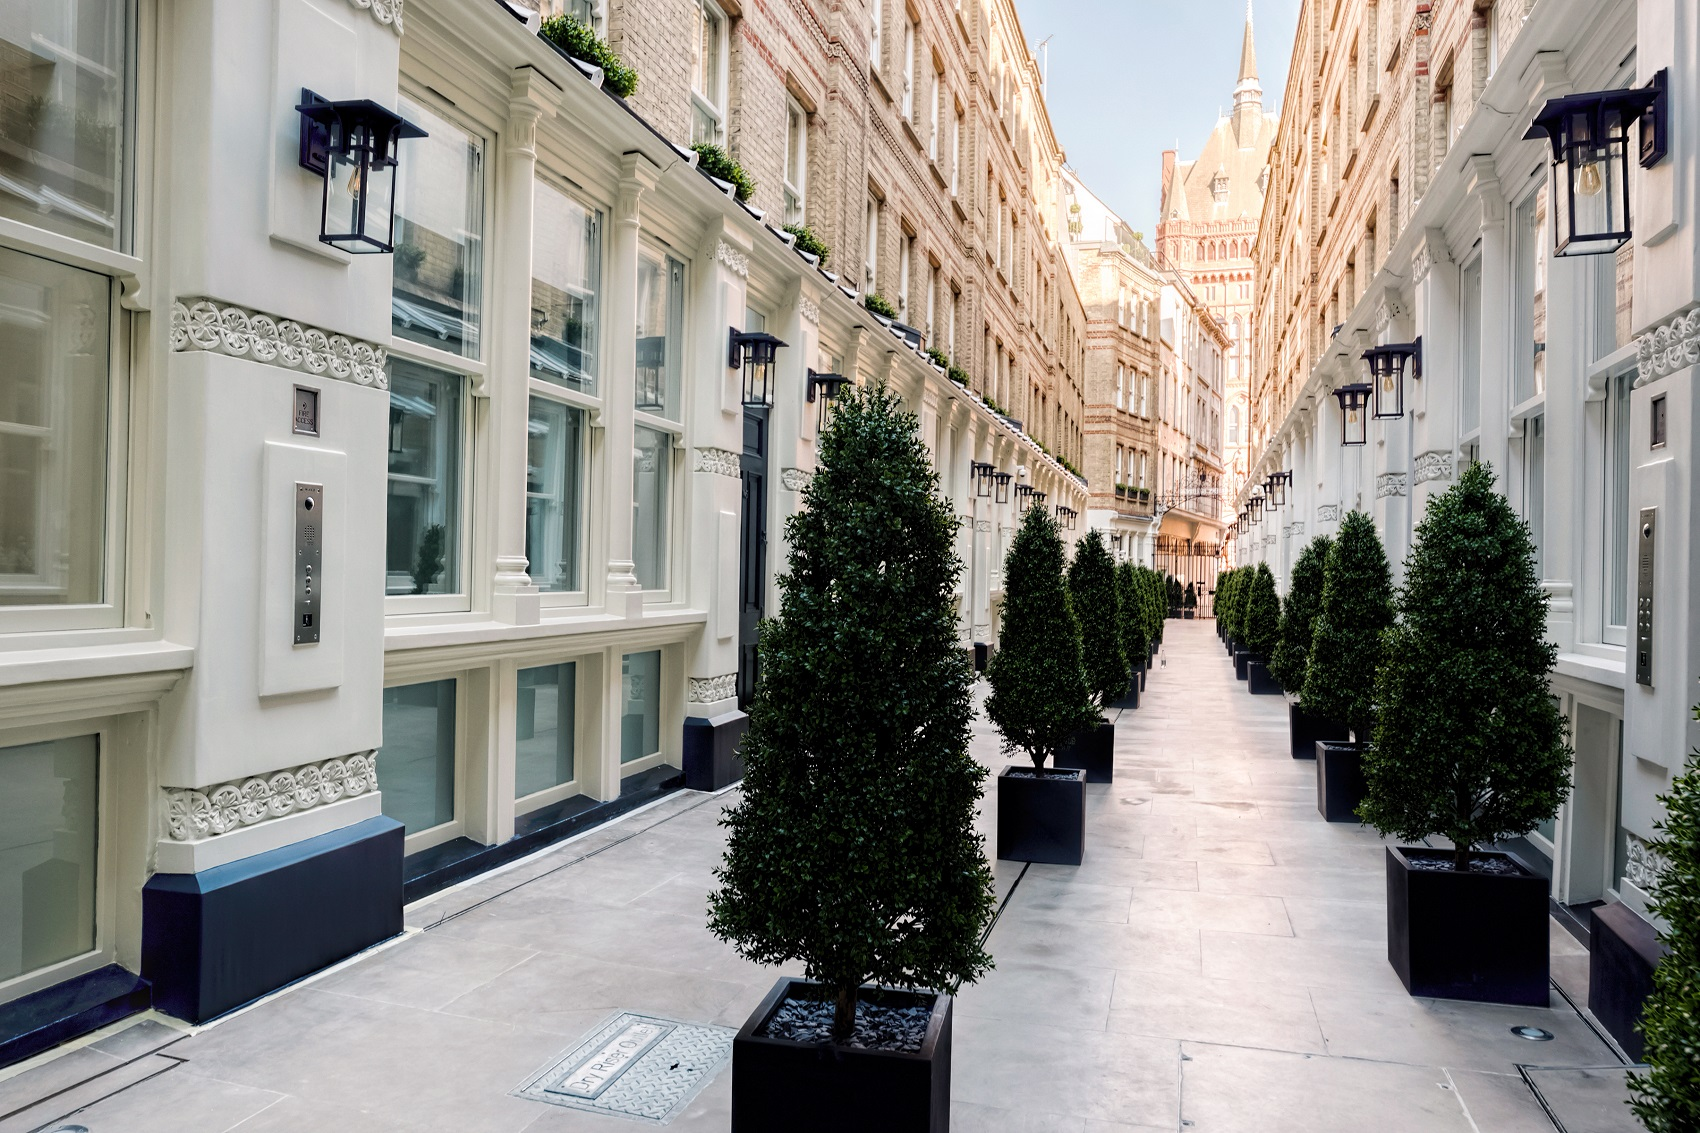 Stunning Row of Houses in the heart of London